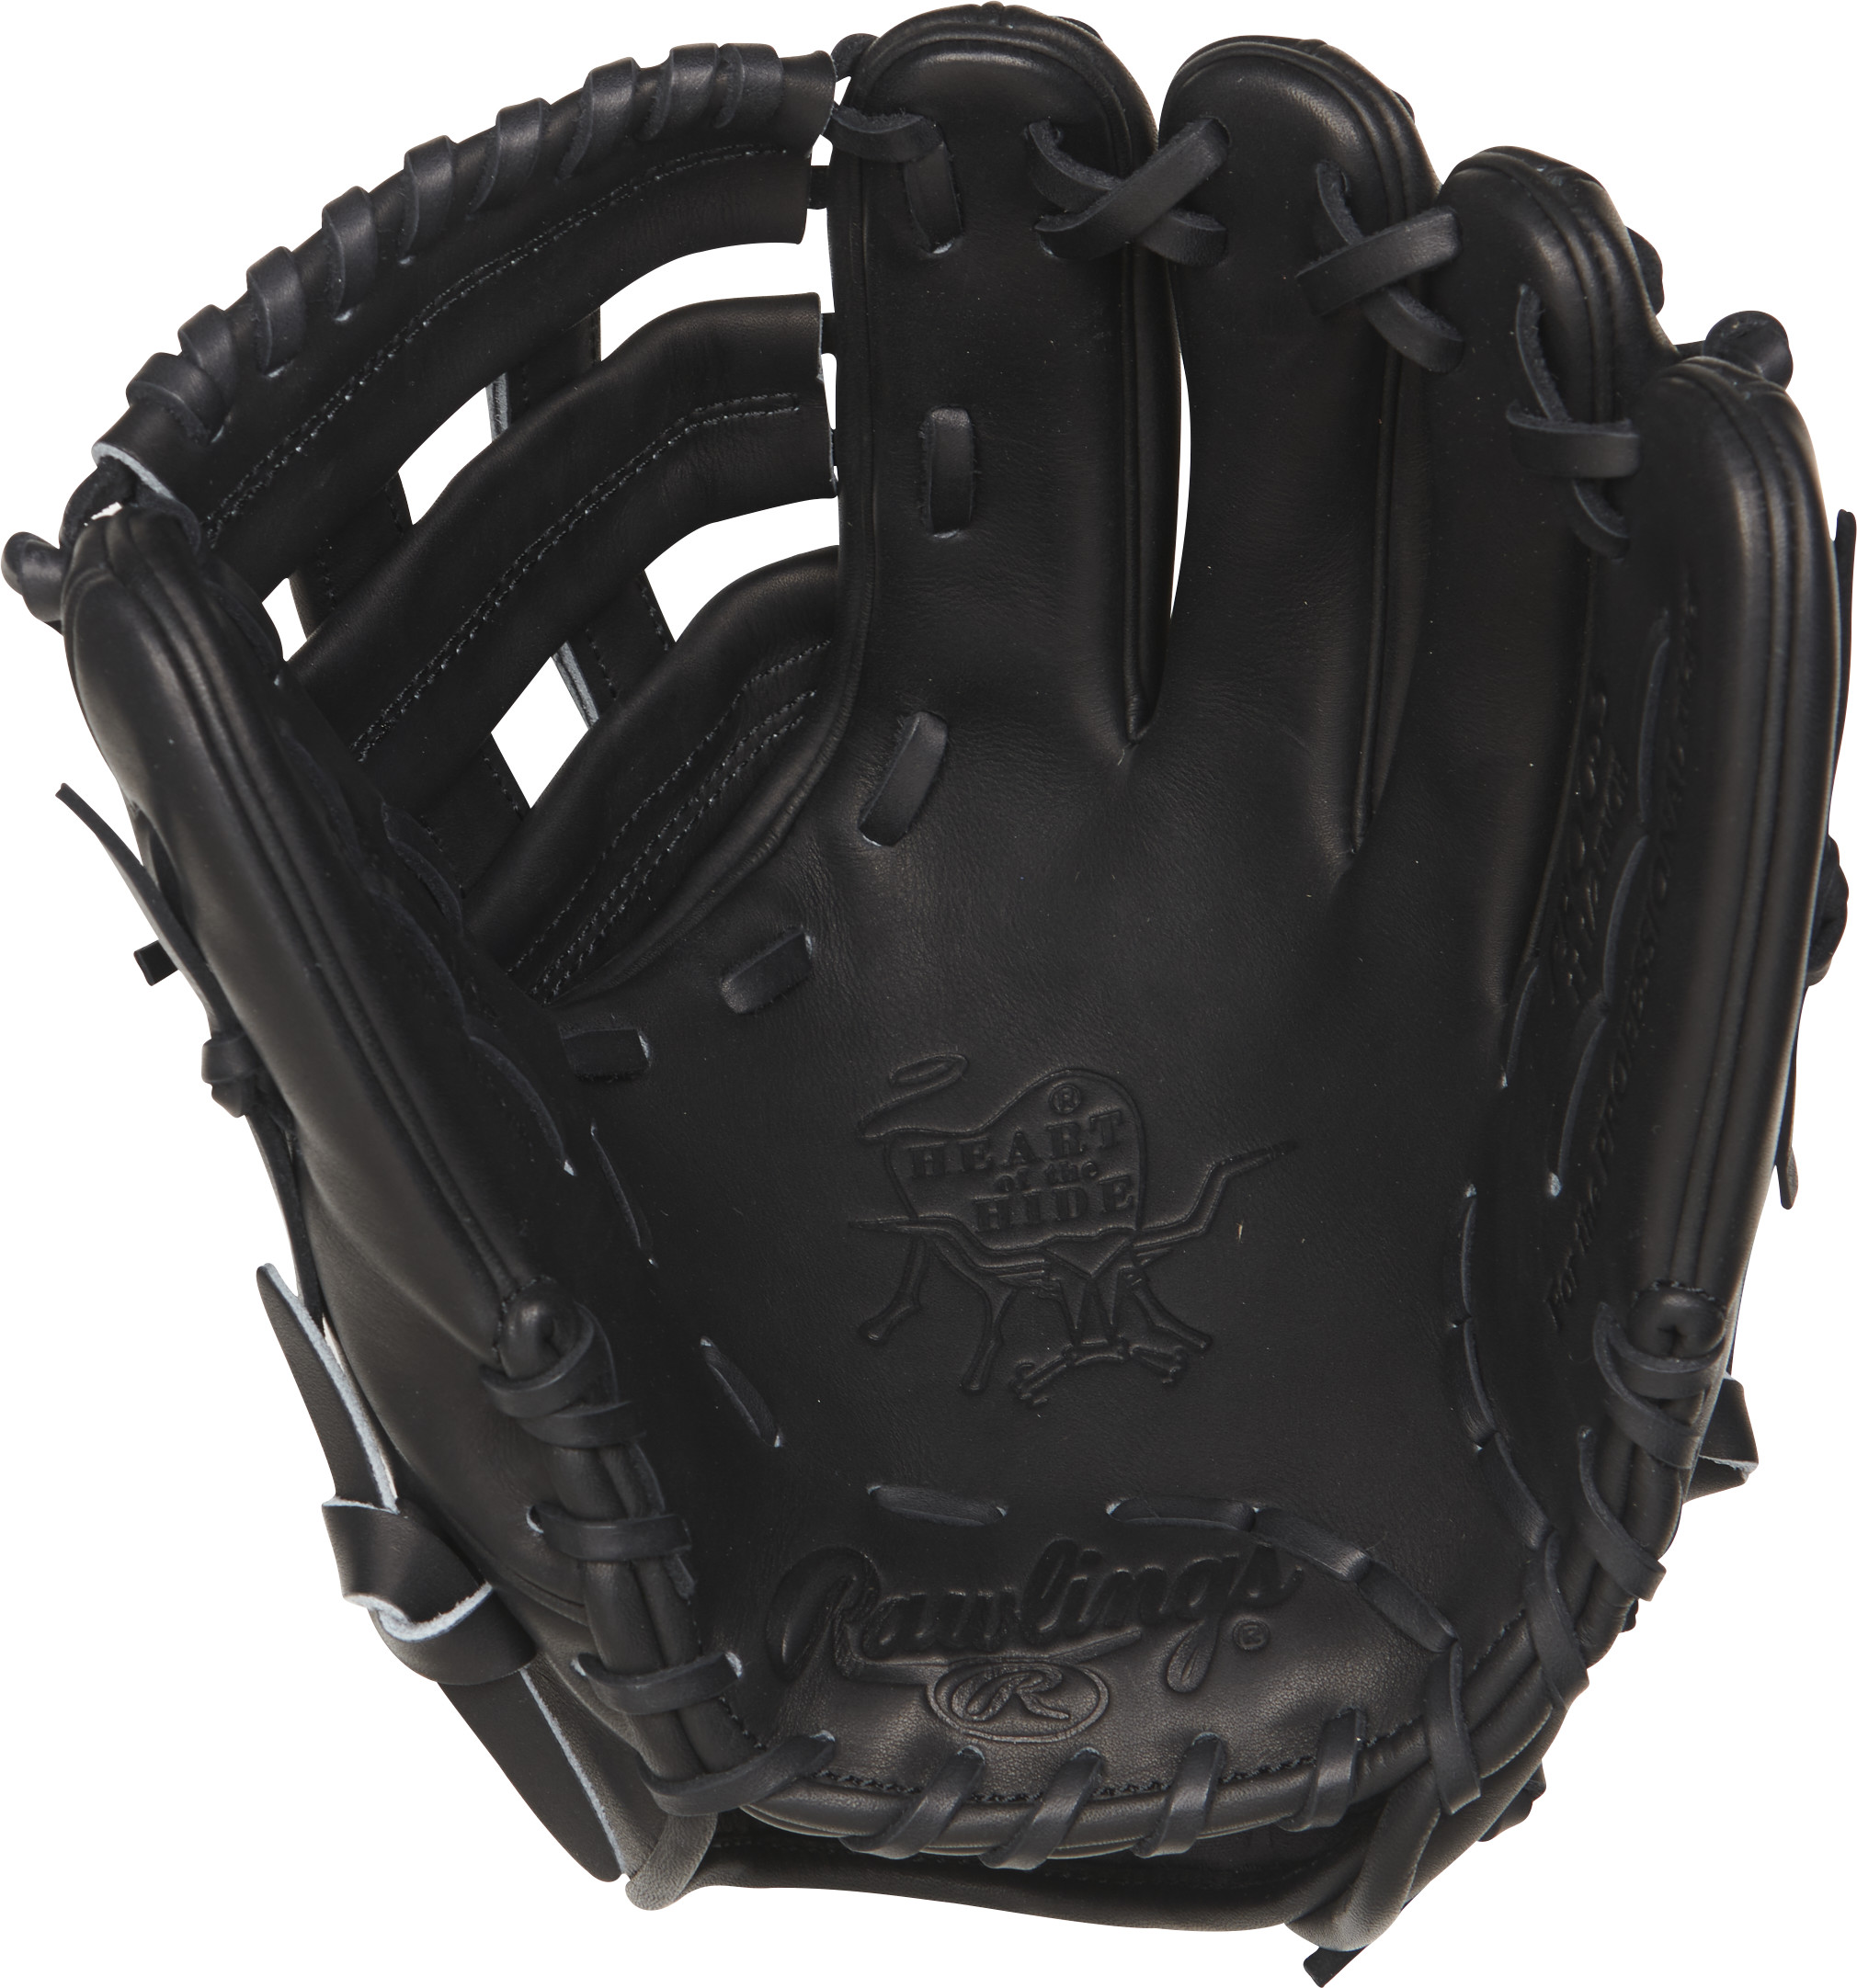 http://www.bestbatdeals.com/images/gloves/rawlings/PROCS5-1.jpg